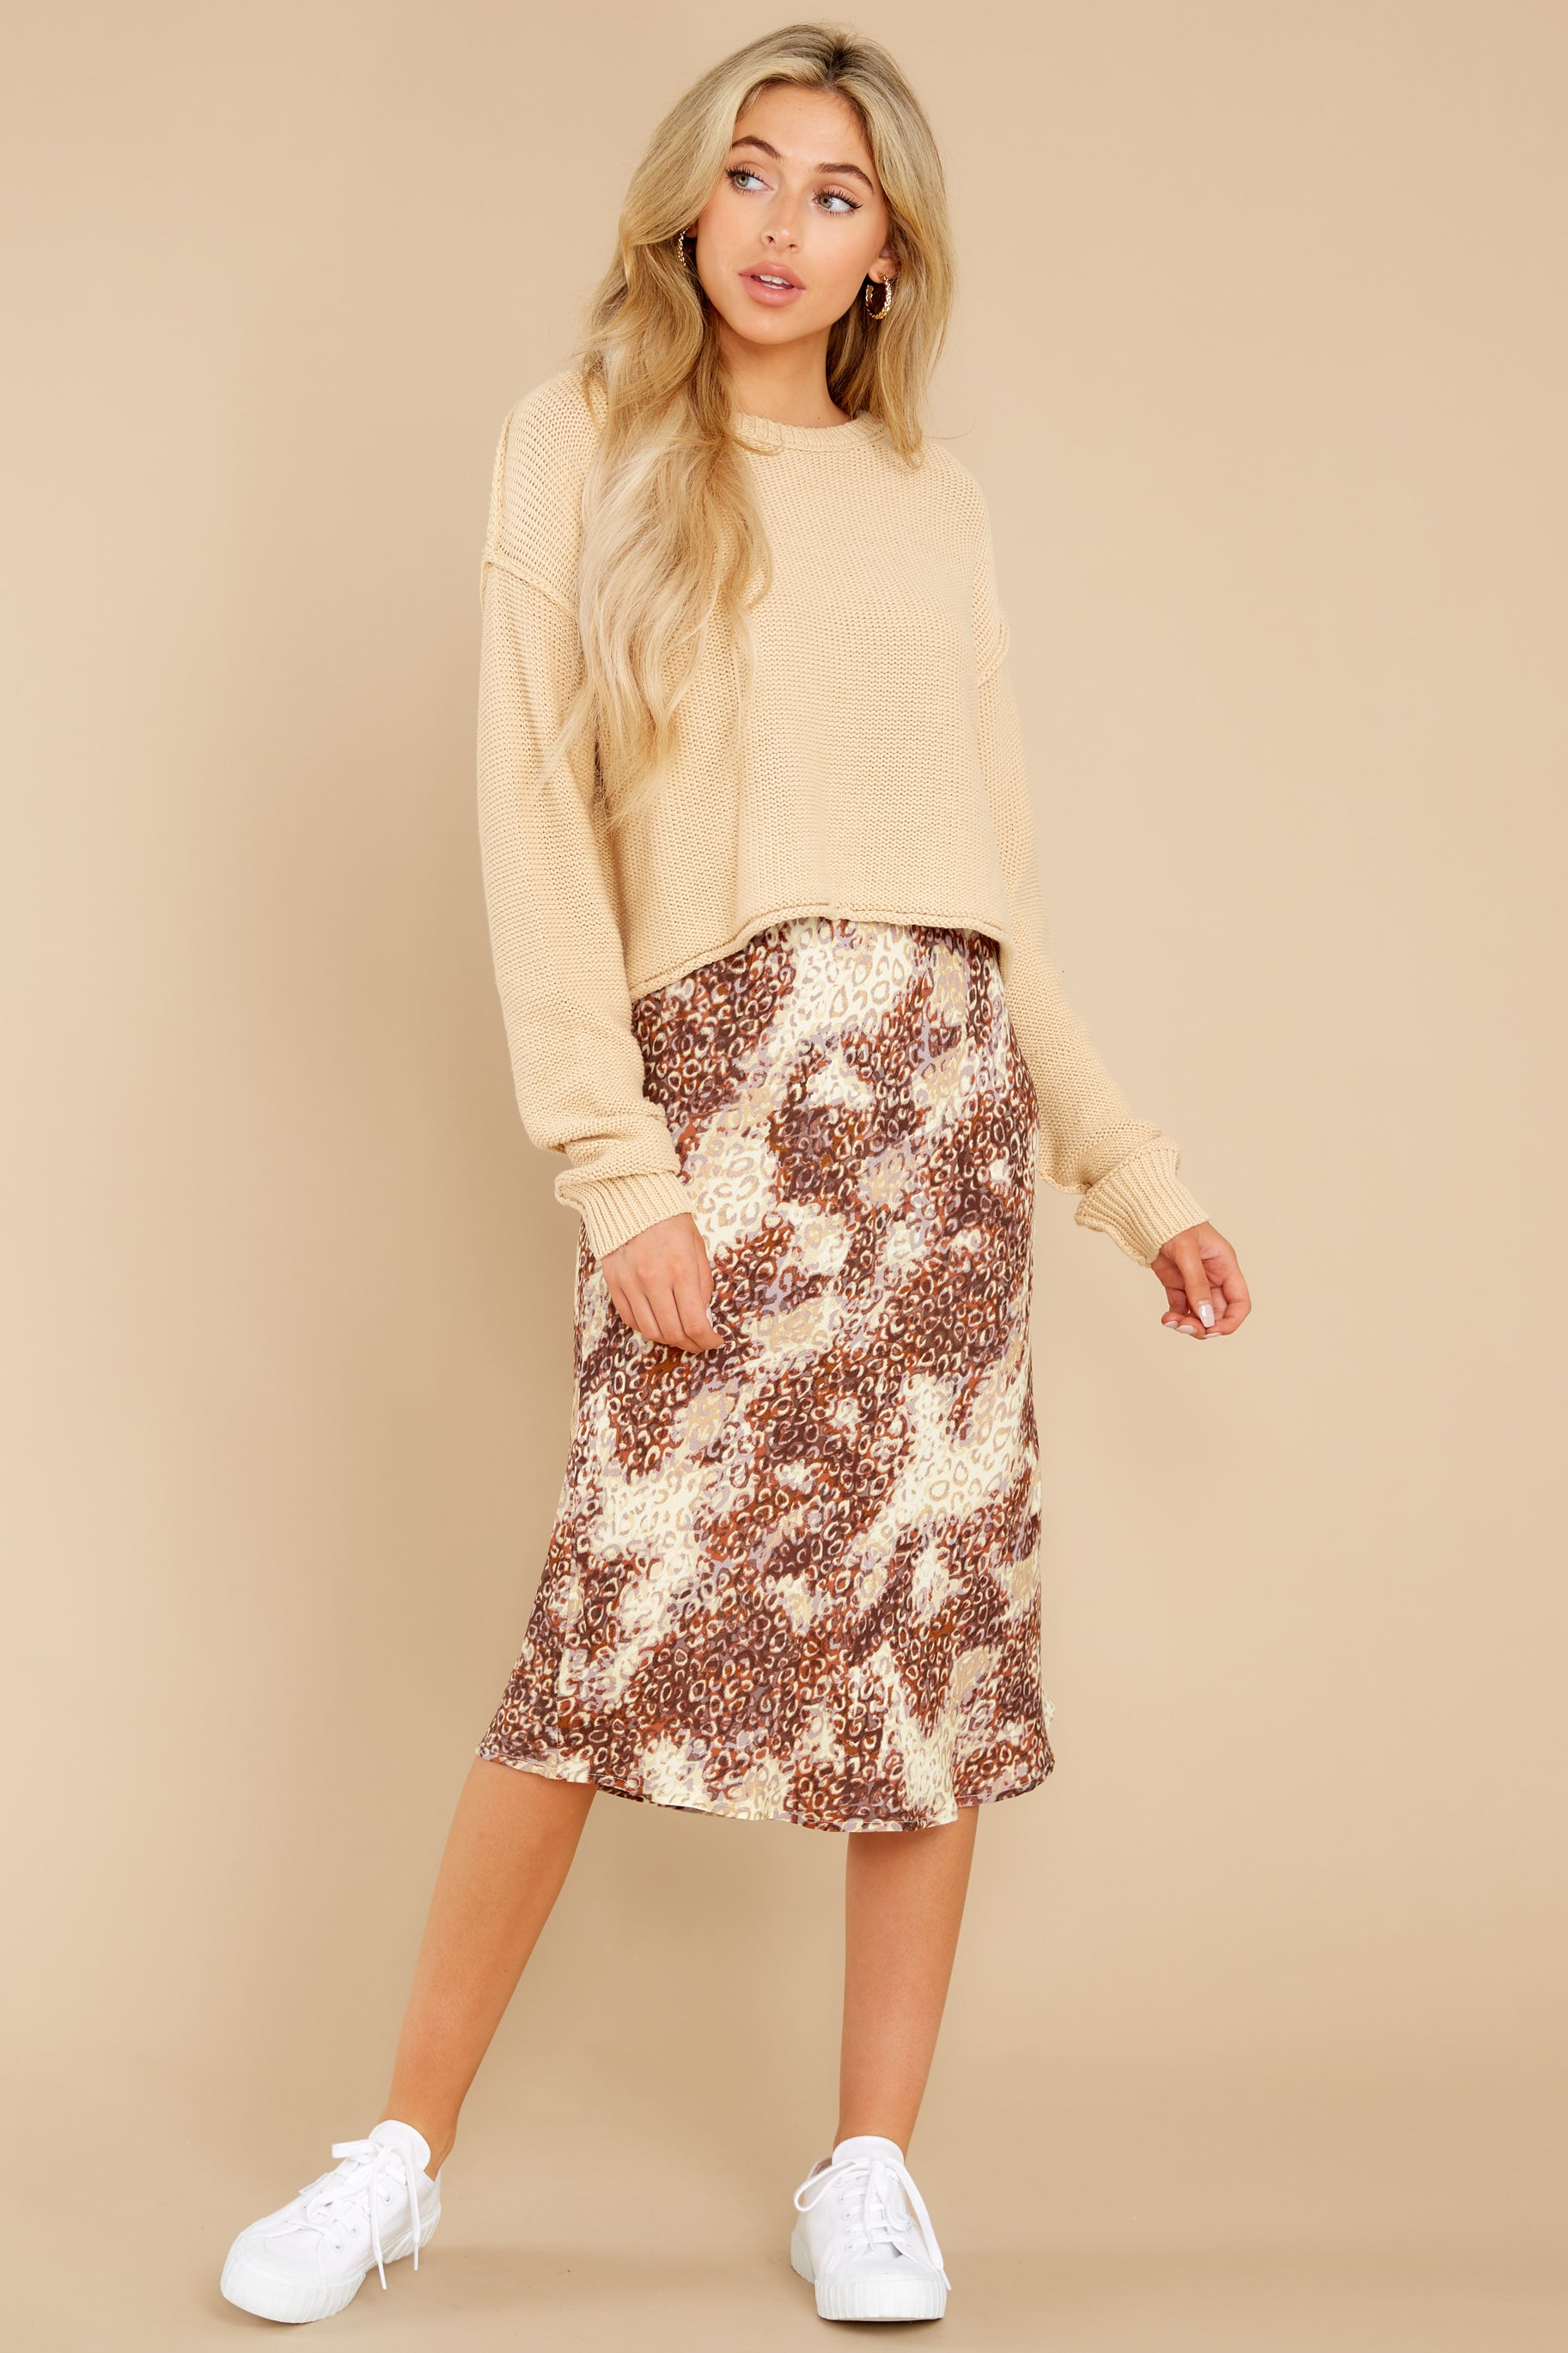 4 On The Mark Multi Print Midi Skirt at reddress.com